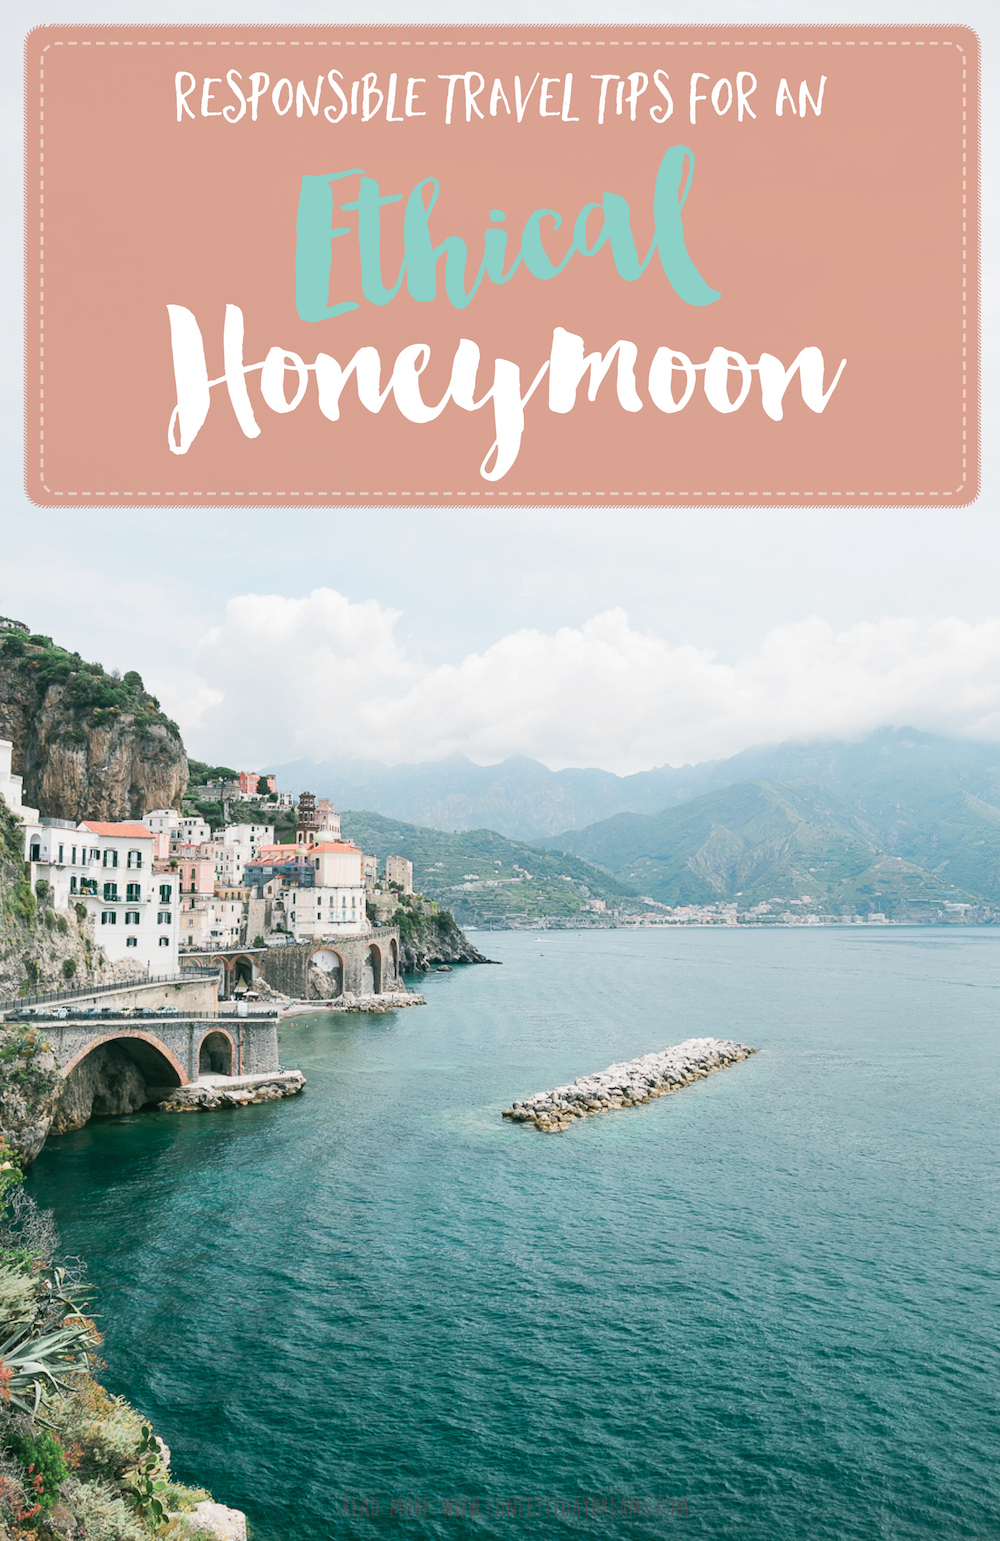 Responsible Ethical Honeymoon Travel Tips